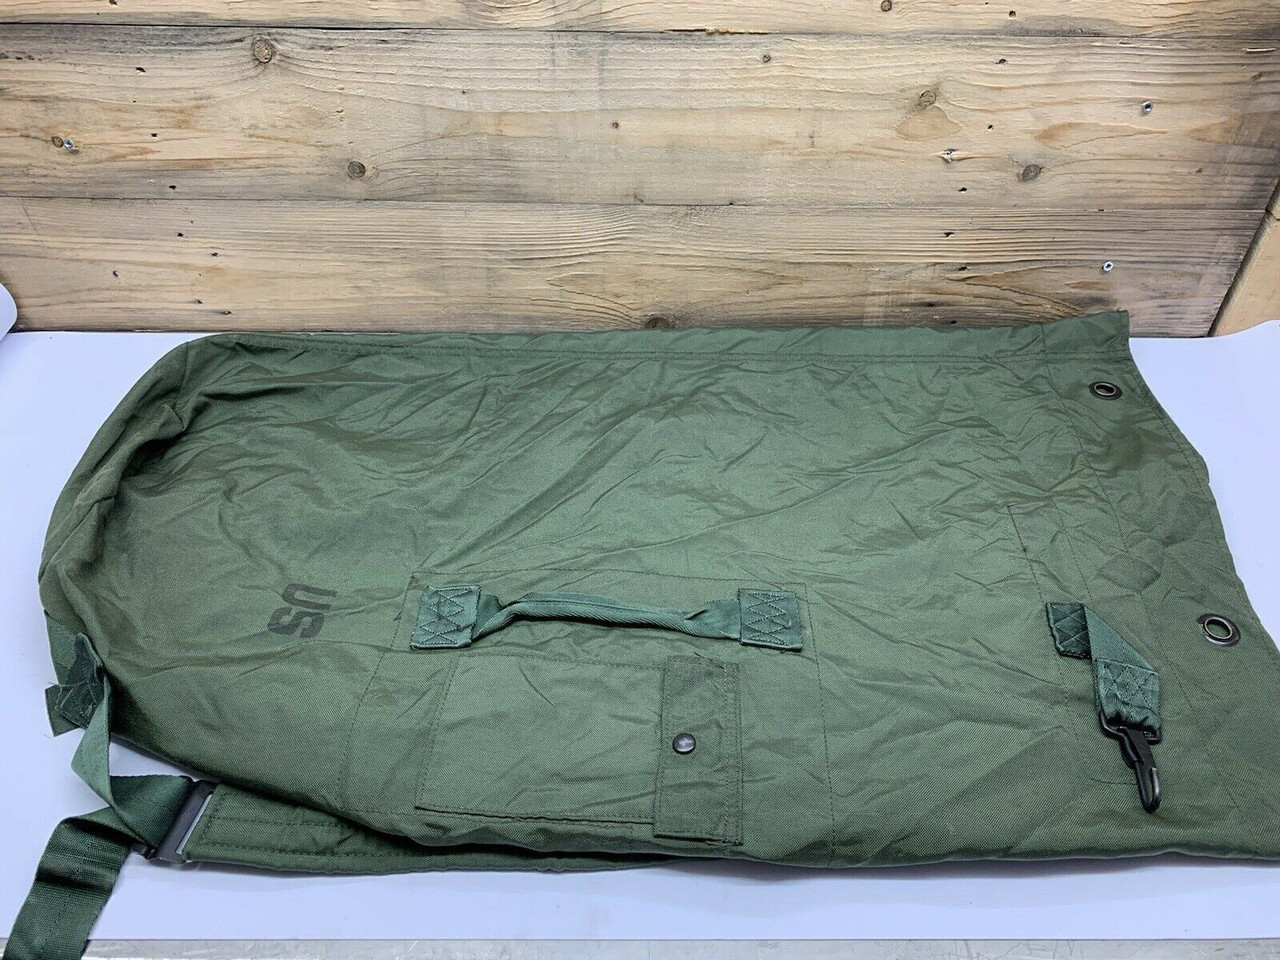 Military Duffel Bag 8465011178699 Camouflage Green Two-Strap